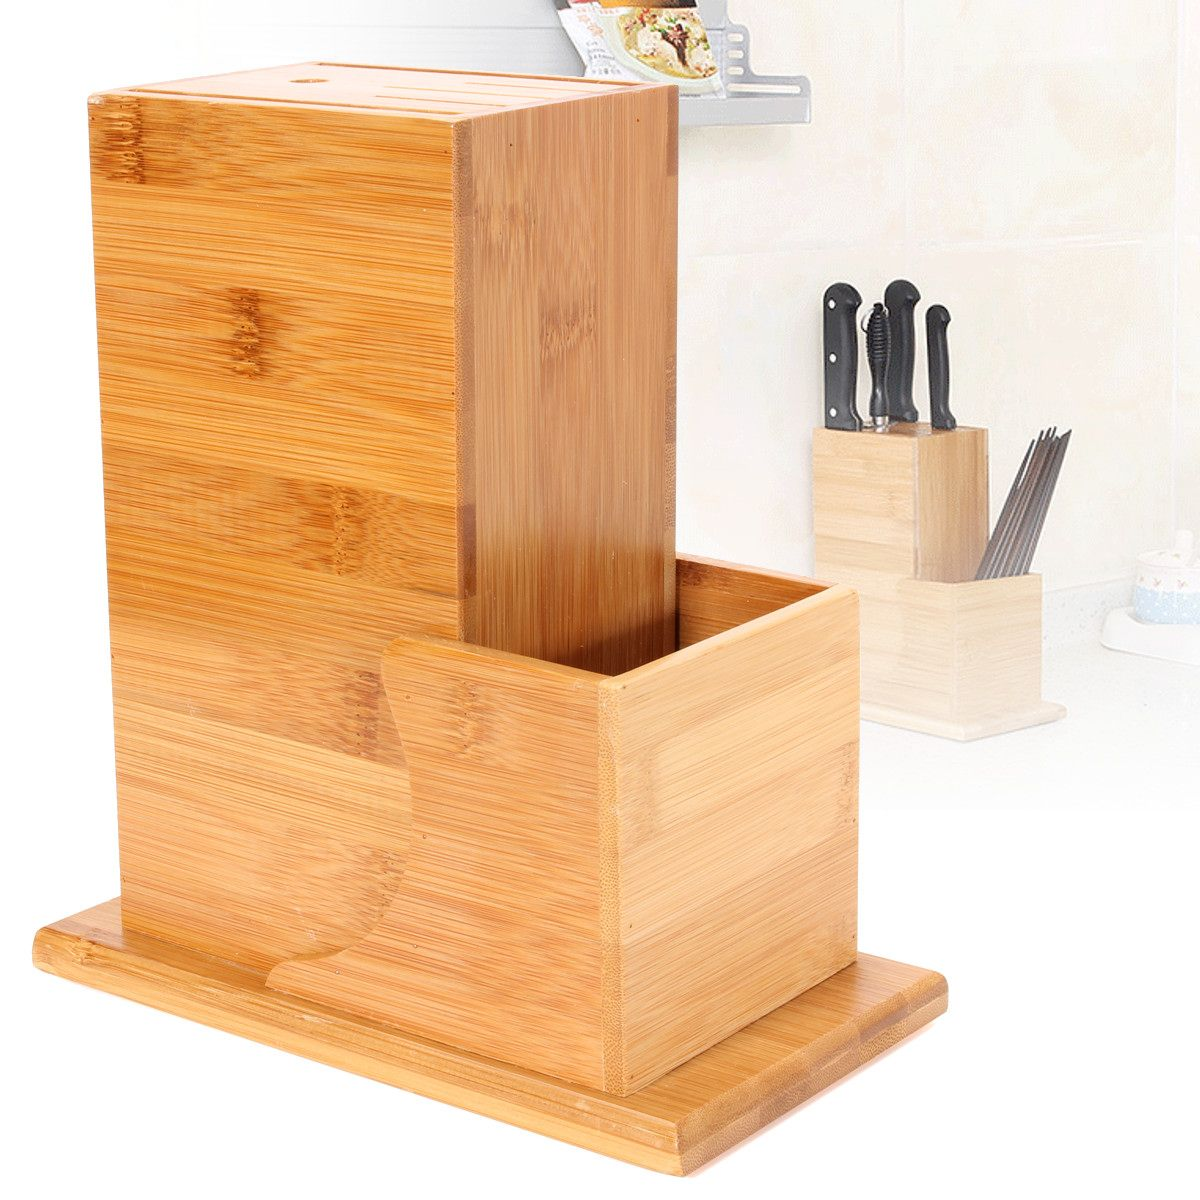 Bamboo Kitchen Wood Knife Holder Multifunctional Storage Rack Tool Holder Bamboo Knife Block Stand Kitchen Accessories